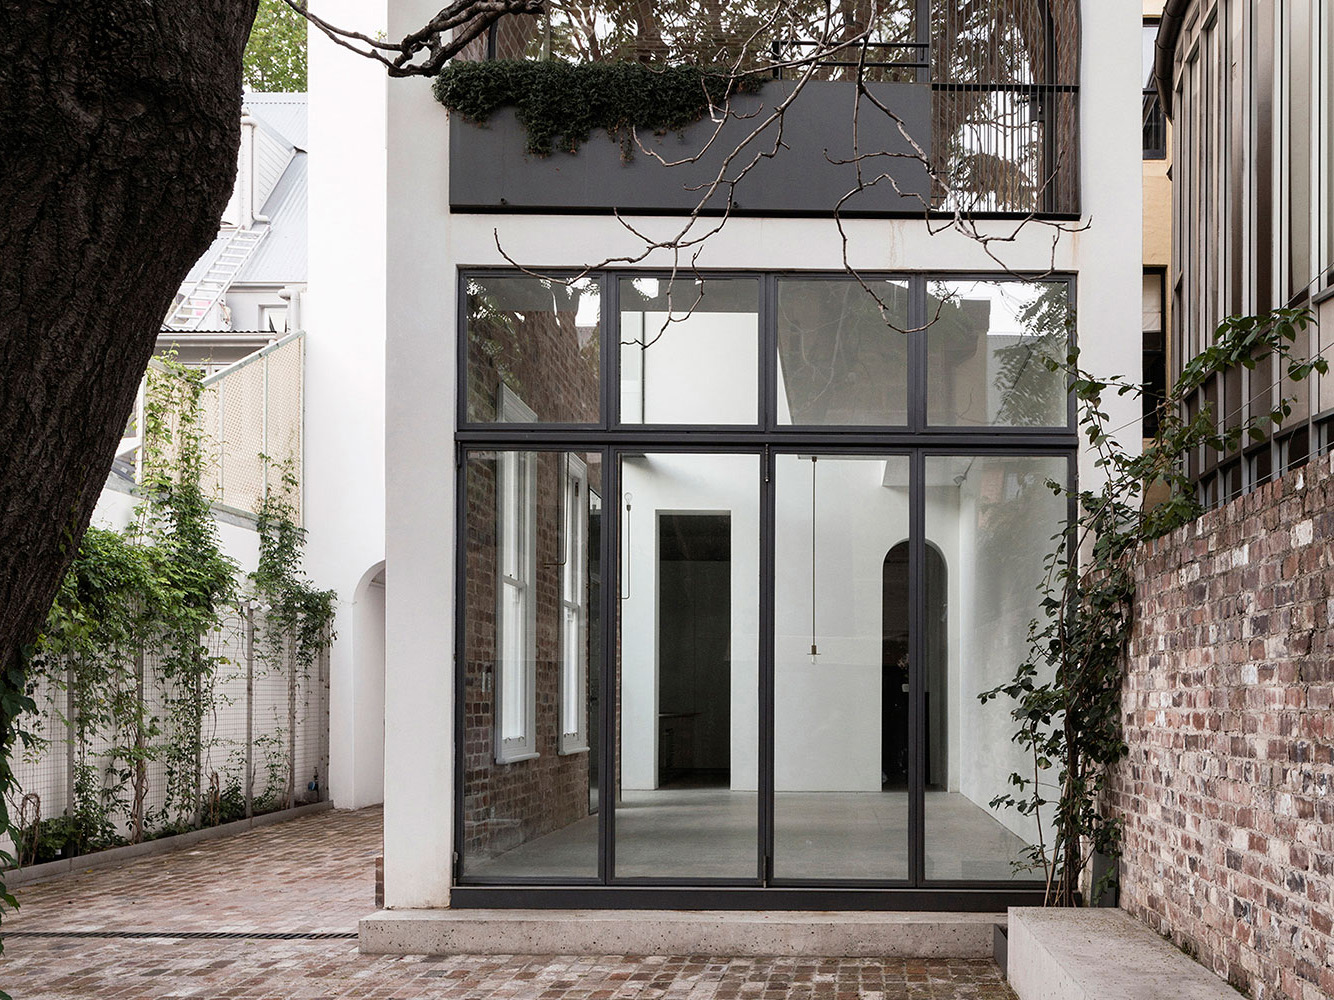 The Renato D'Ettorre Architects entry involved the restoration and modification of a heritage-listed three storey late Victorian Italianate-style C1890's terrace house and C1860's sandstone stable in inner Sydney.  Image: Supplied